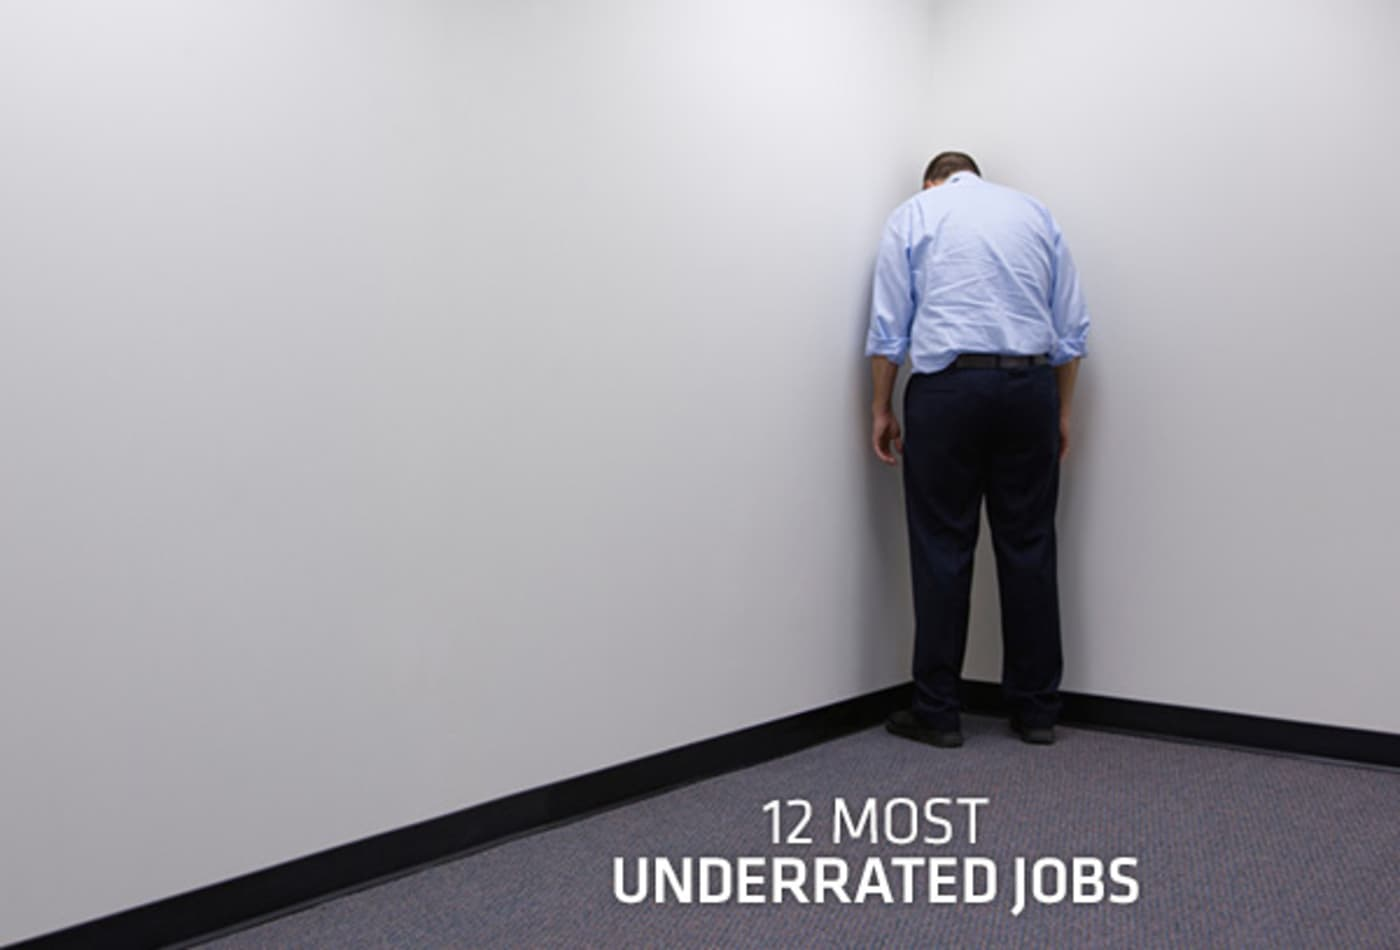 12-underrated-jobs-cover1.jpg